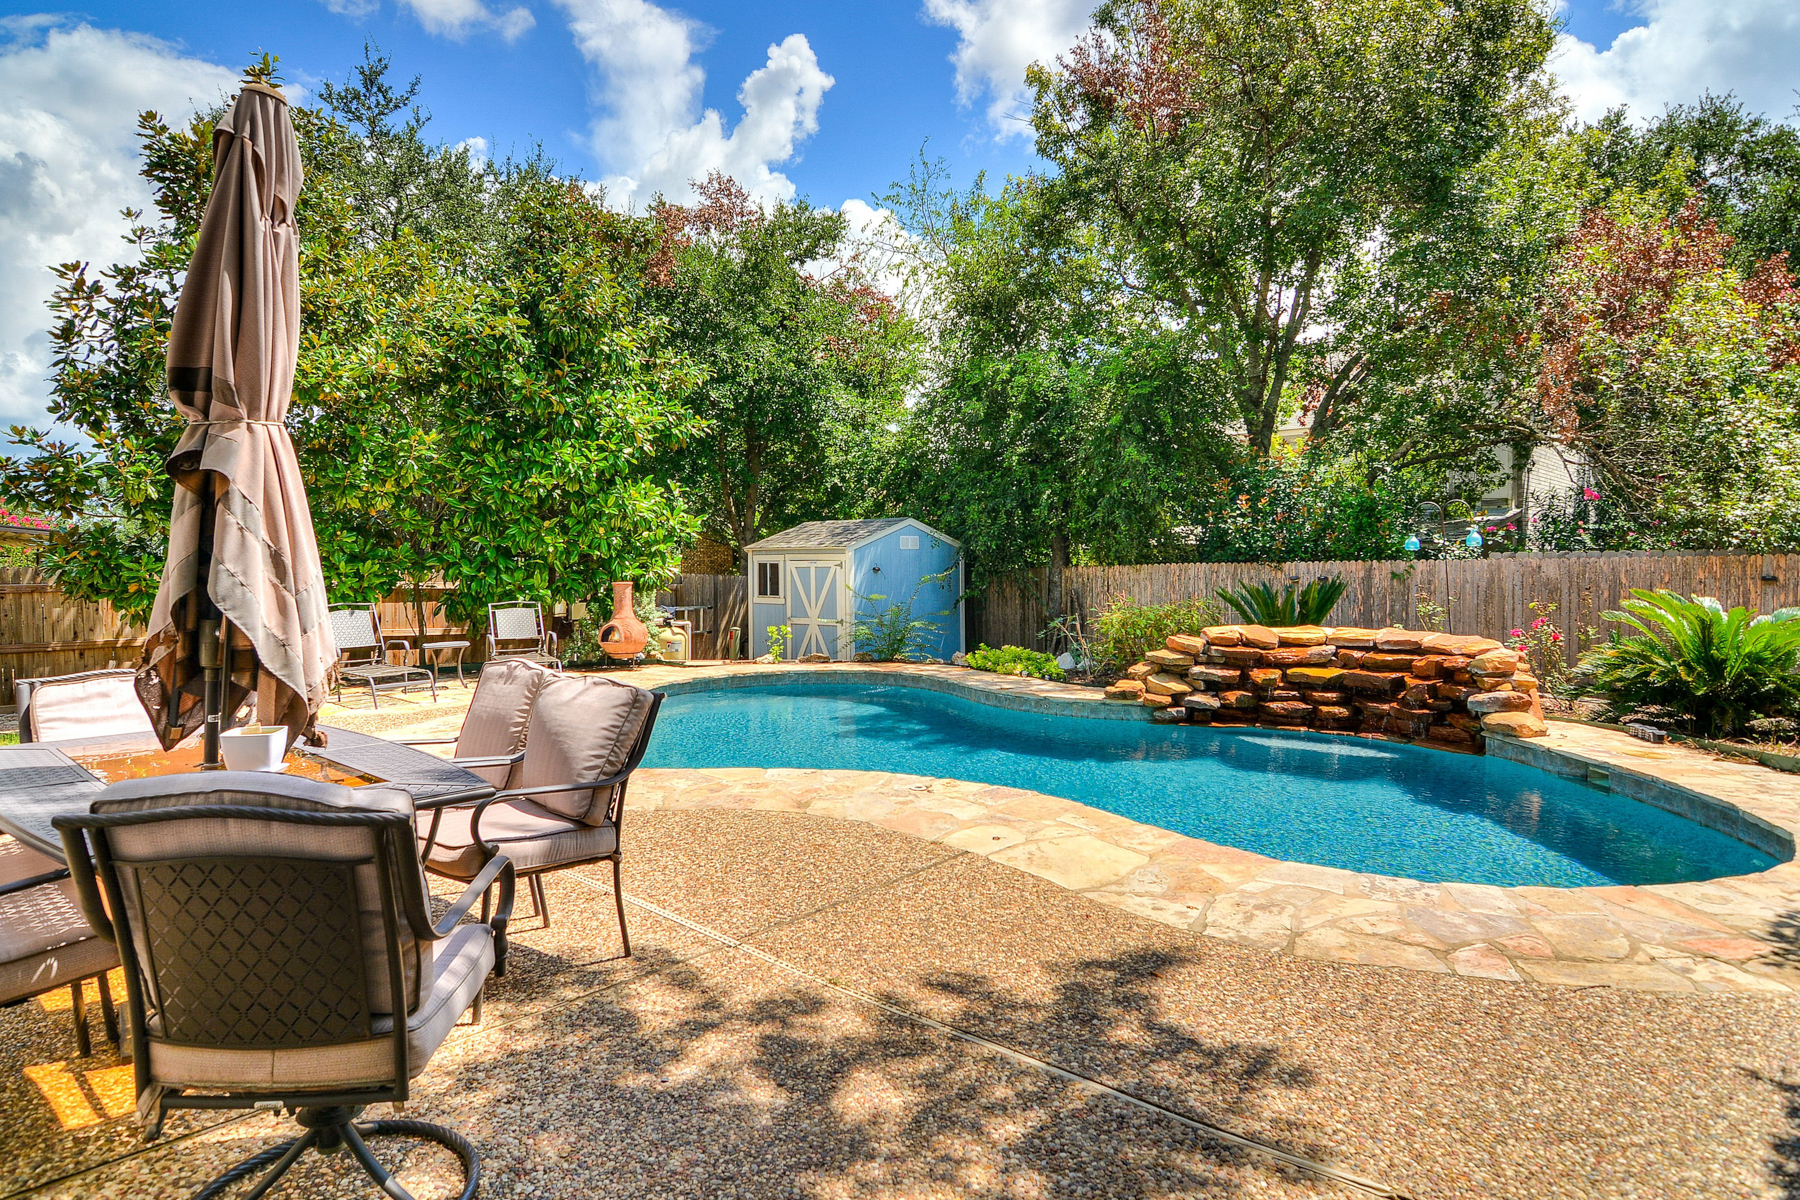 Additional photo for property listing at Darling Home in Vistas of Encino 3522 Salano San Antonio, Texas 78259 United States